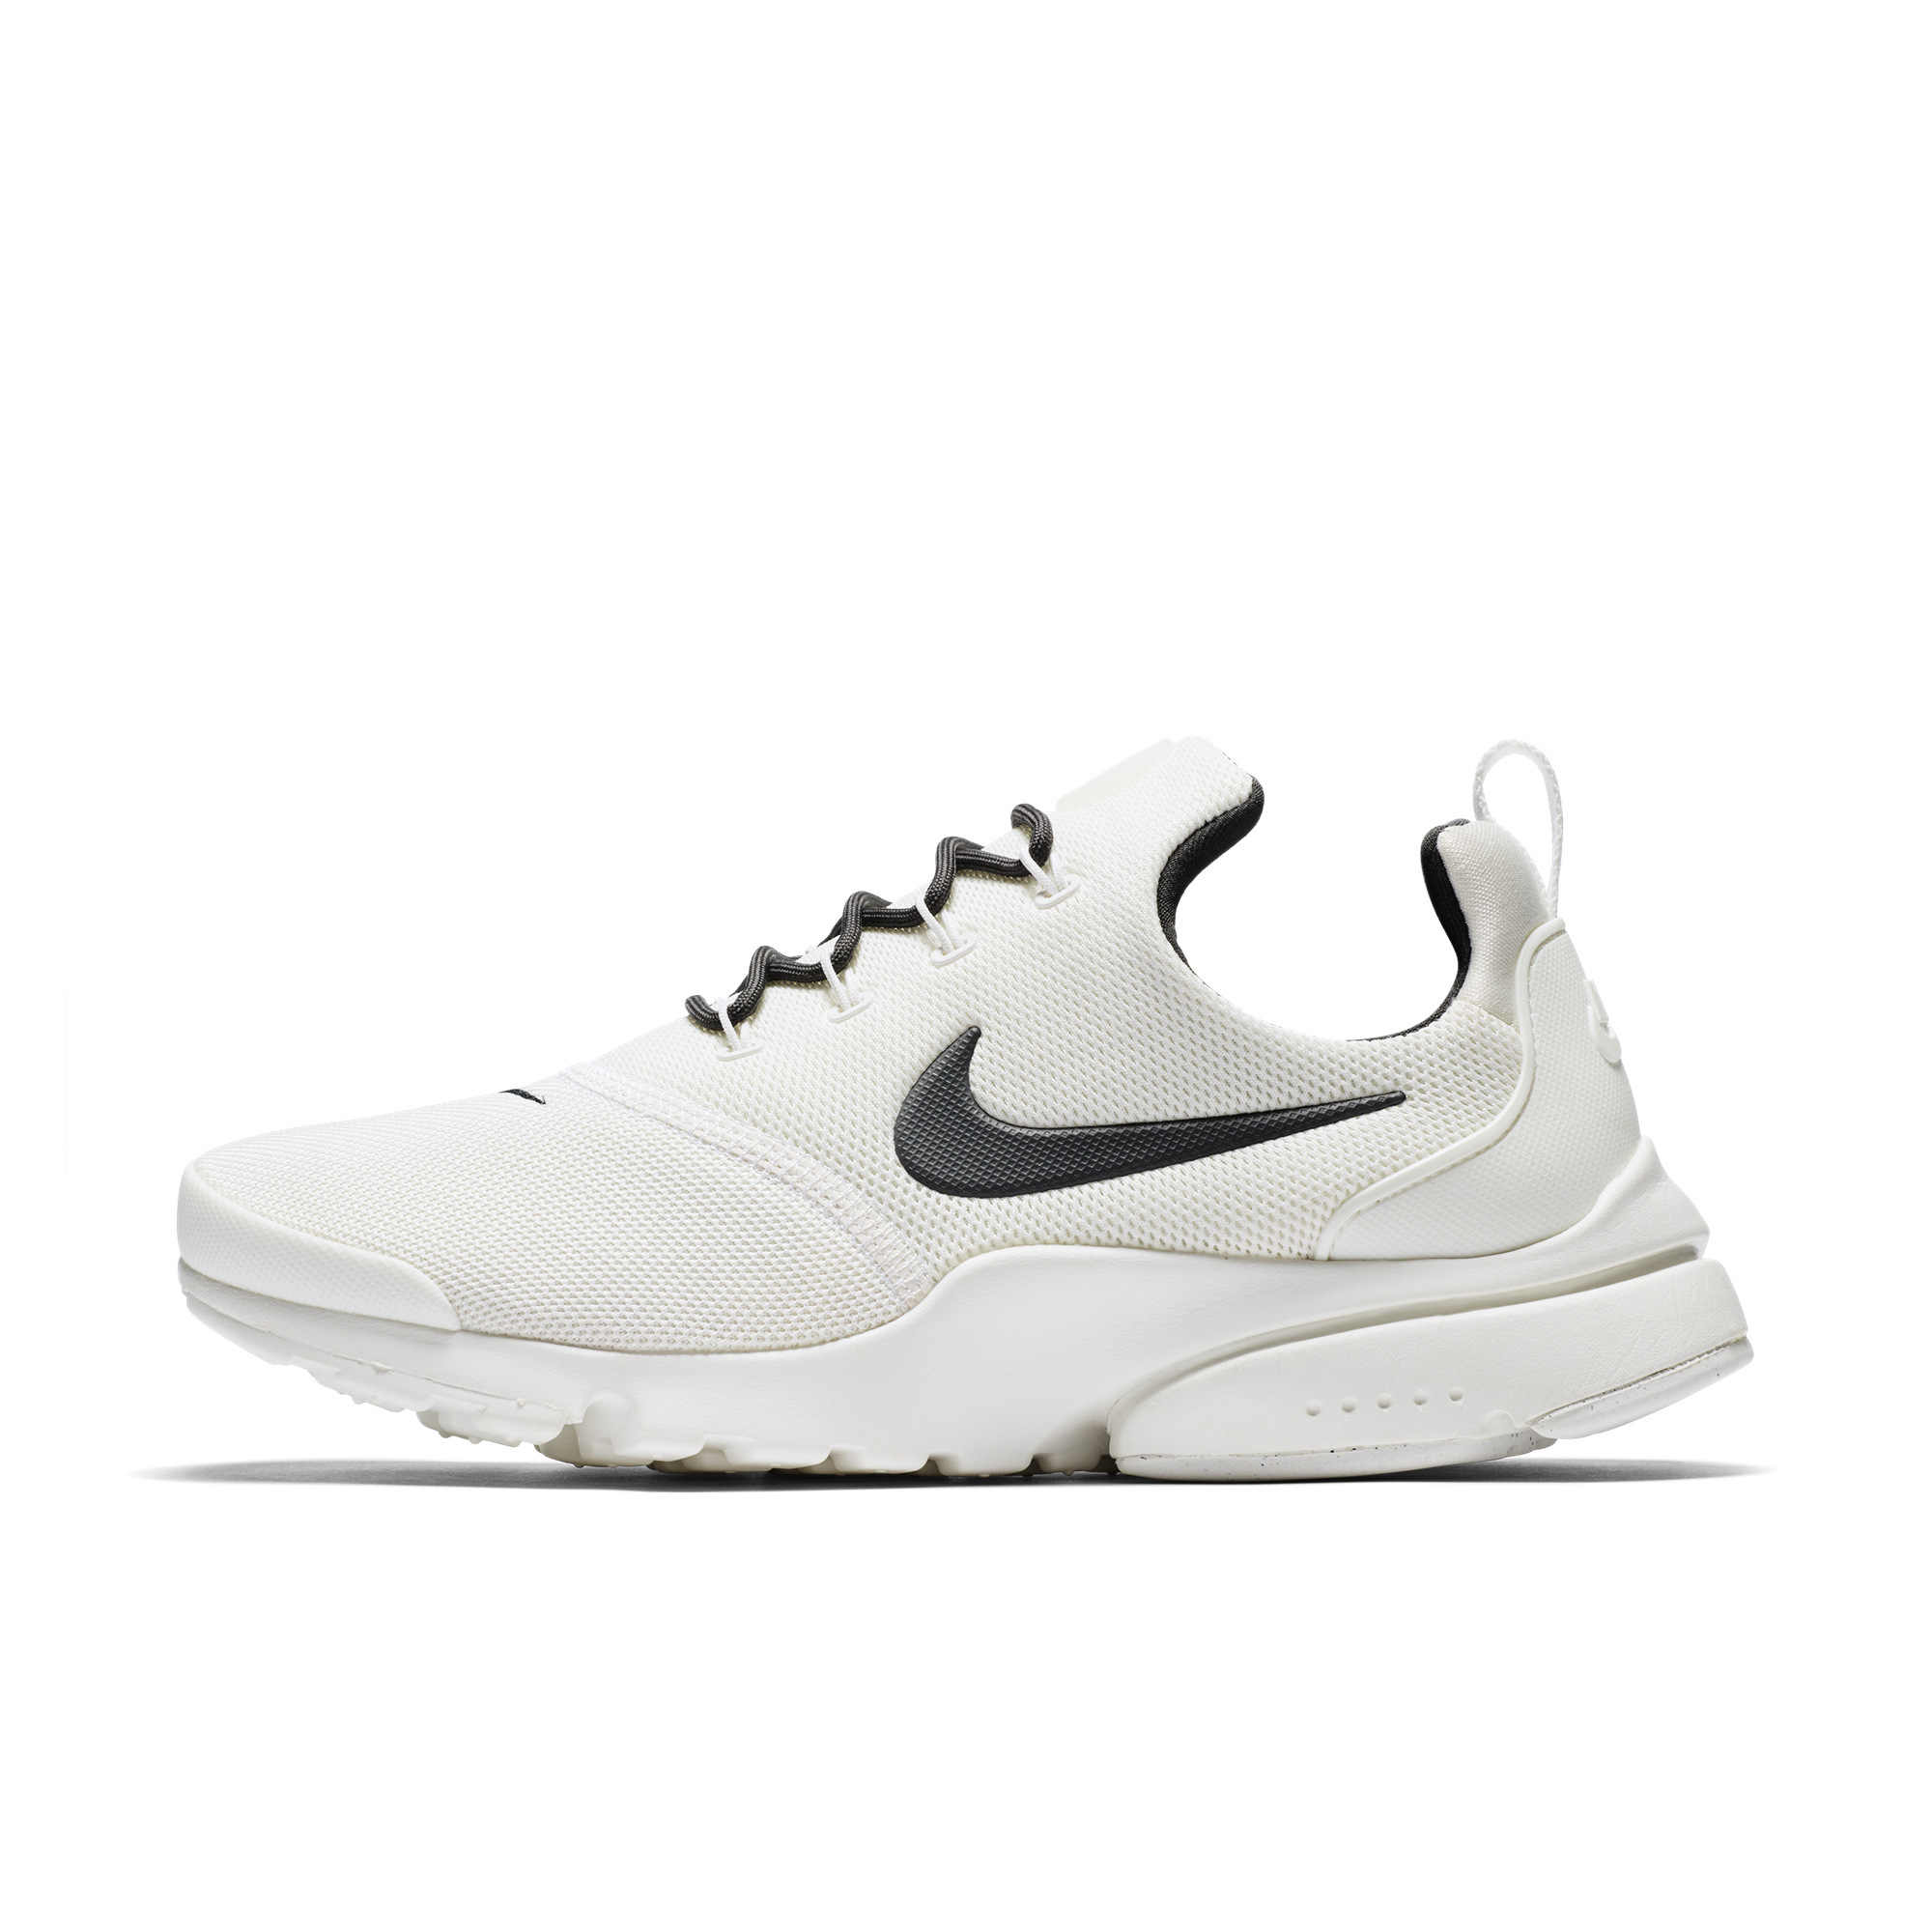 on sale c307a 1a703 Original Authentic NIKE PRESTO FLY Womens Running Shoes Sneakers 910569  Sport Outdoor Breathable Ladies Athletic Classic 910569